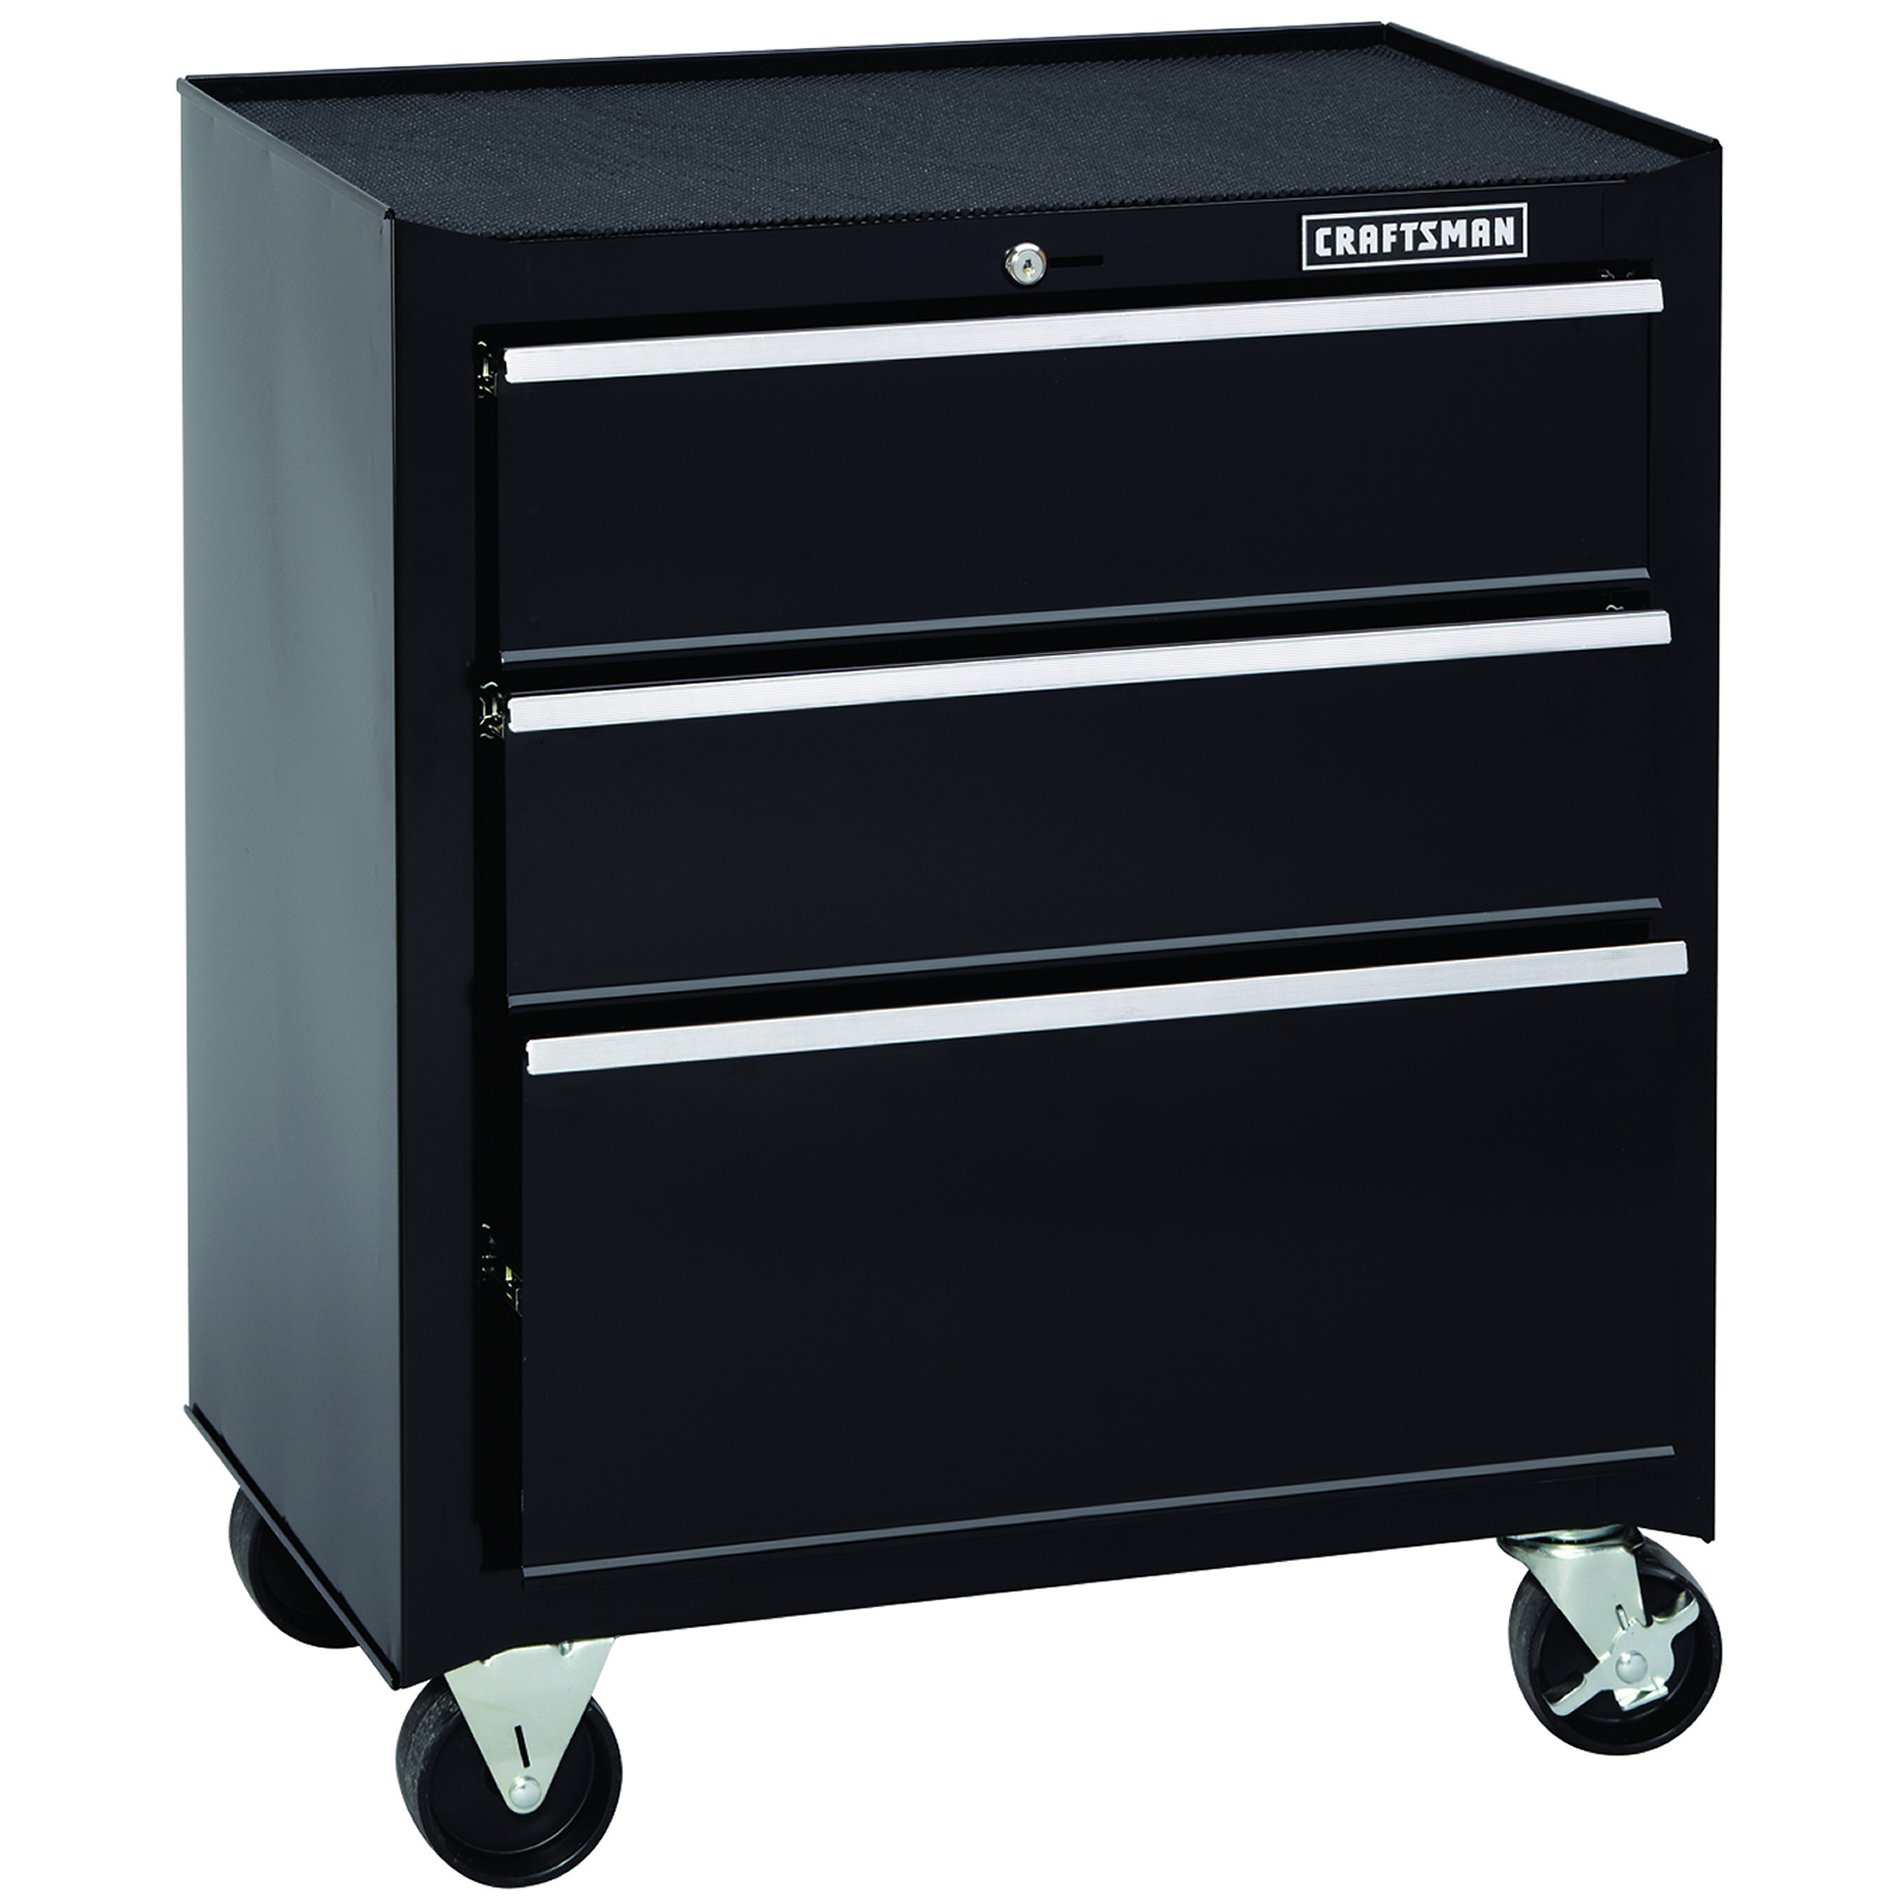 Craftsman-6-Drawer 2-Piece Basic Ball-Bearing Combination - Each Item Sold Separately